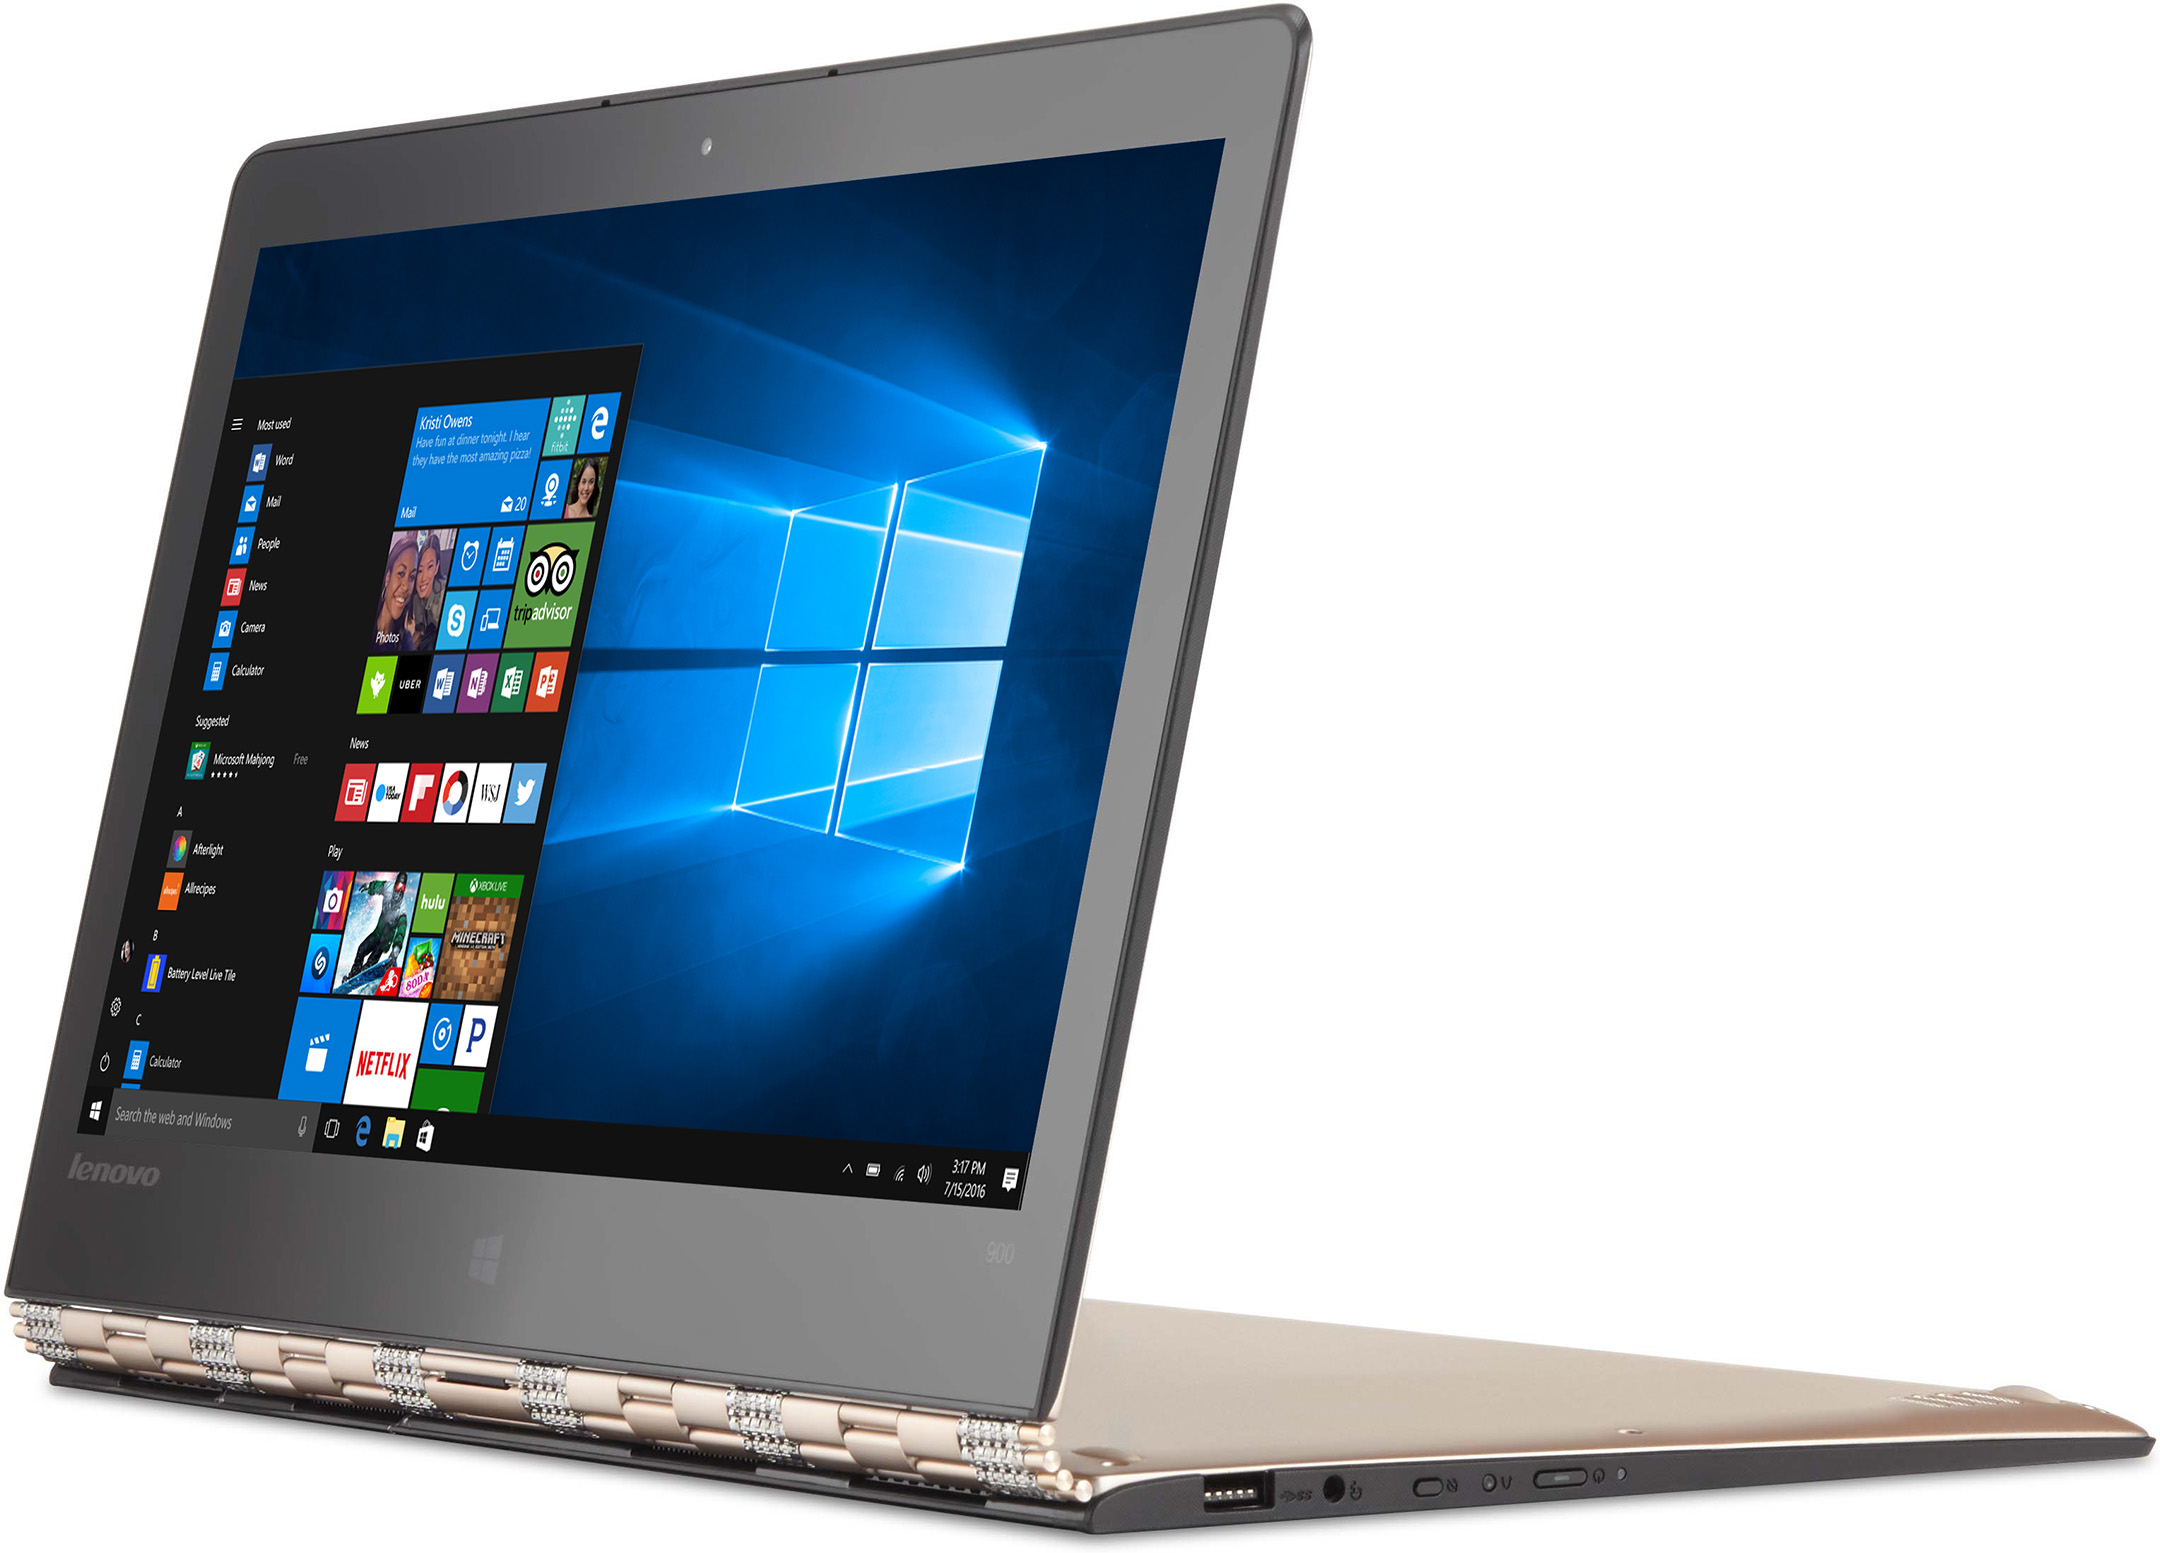 Lenovo Yoga 900-13ISK Signature Edition 2 in 1 PC